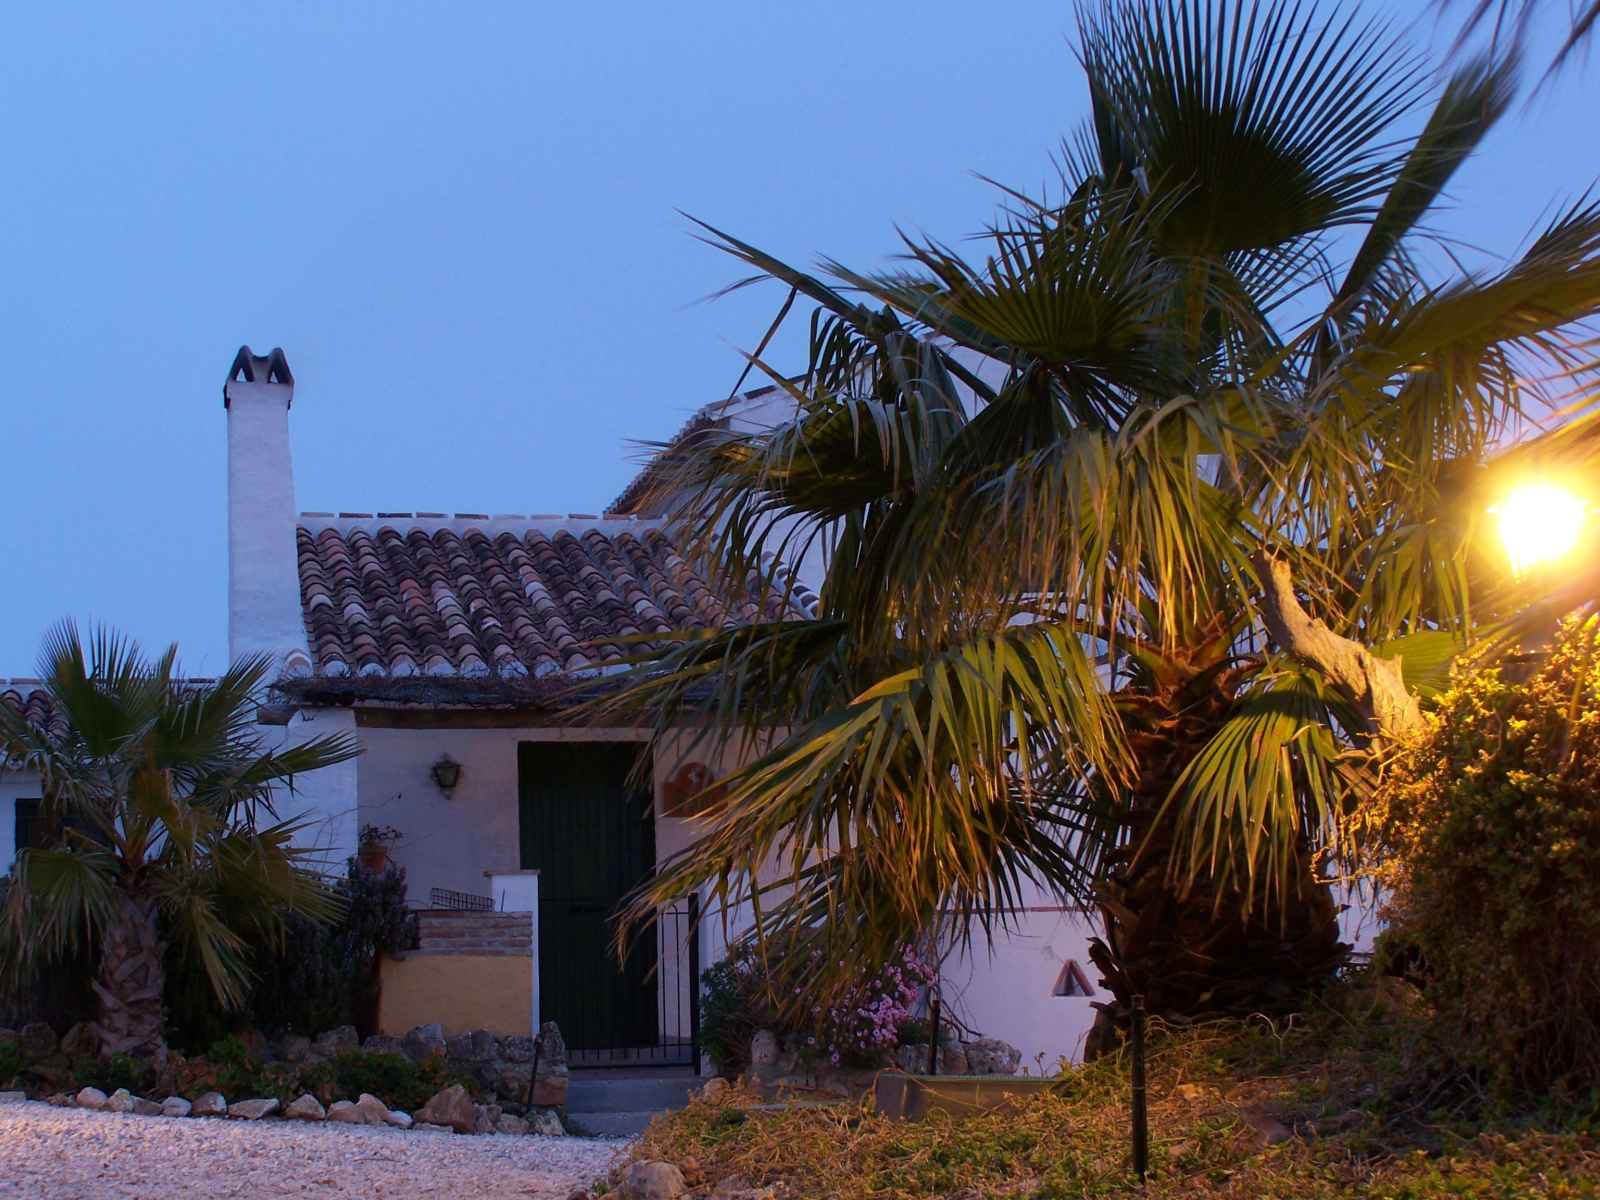 andalusie_2012_1600px_013